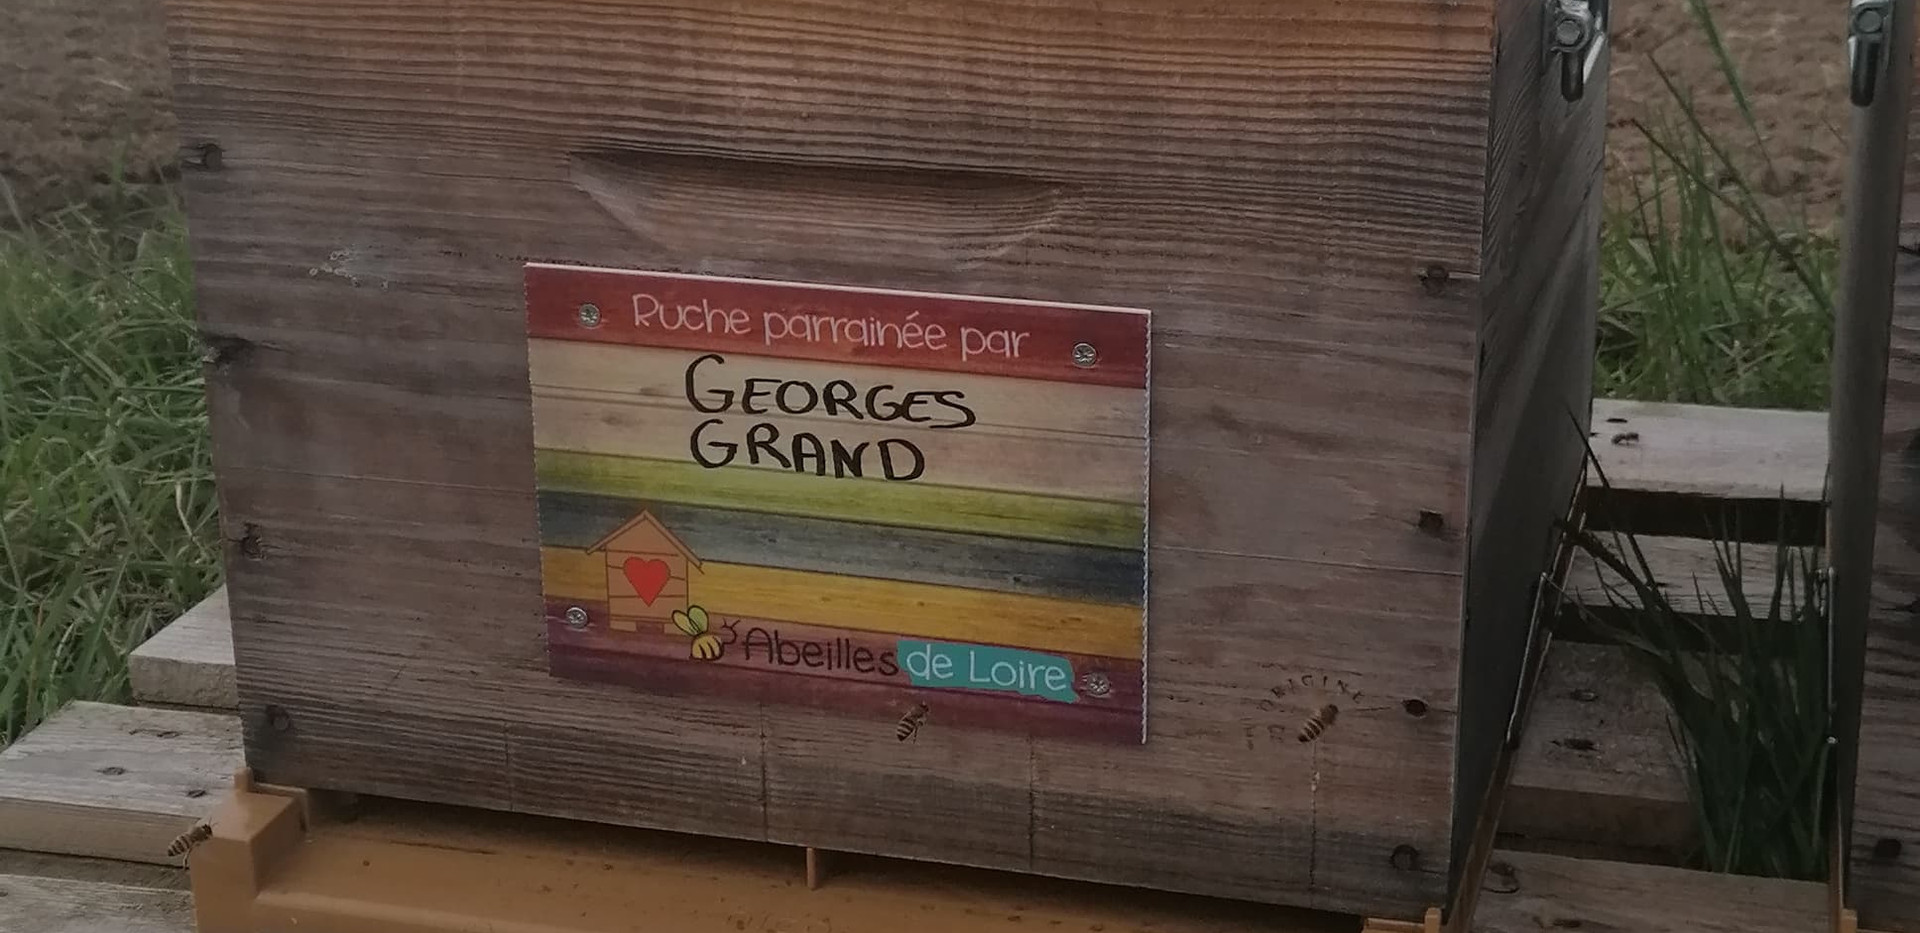 GRAND Georges